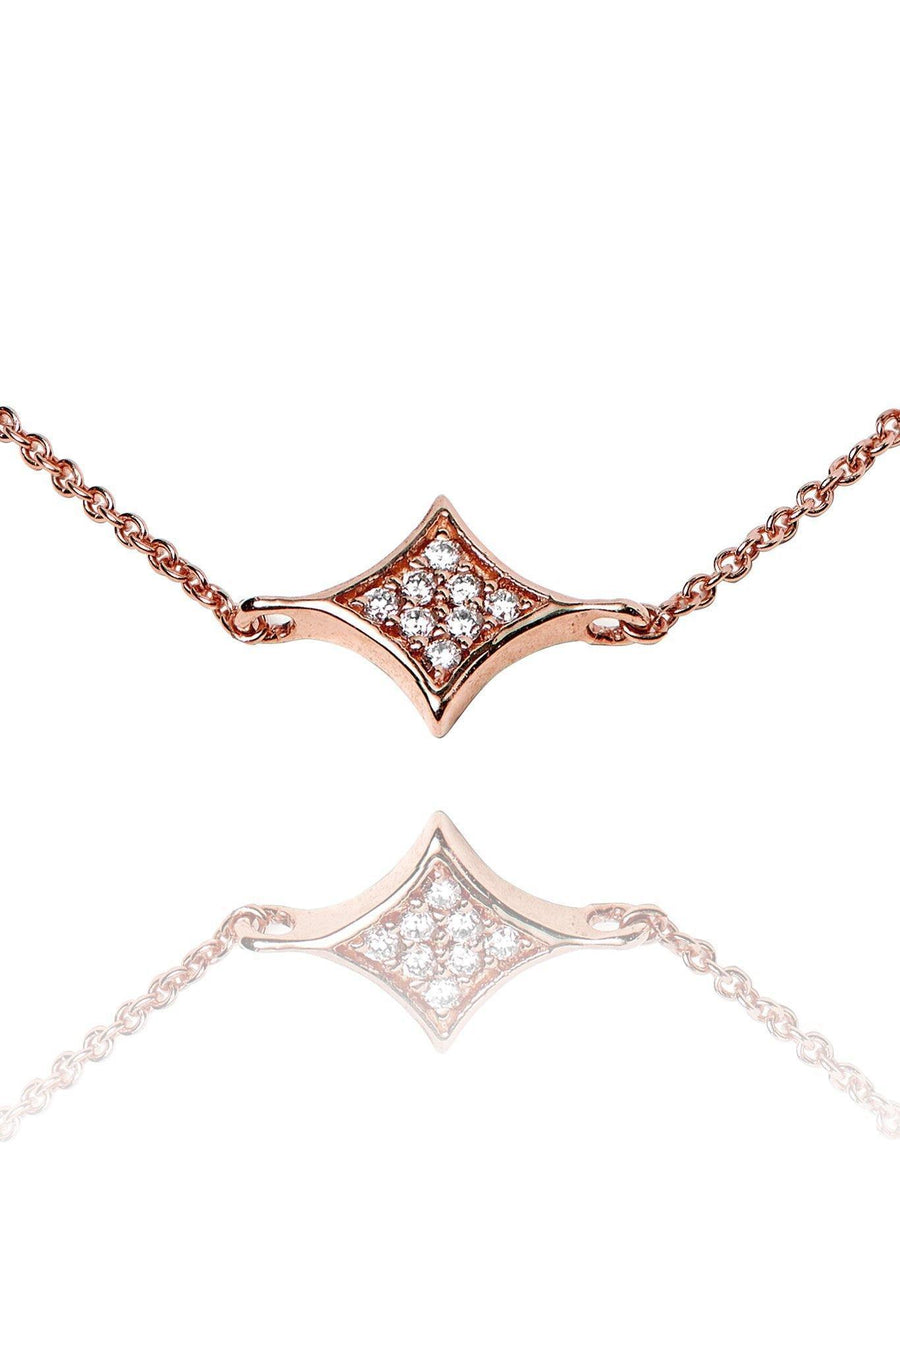 Rhombus Diamond Pavé Bracelet Bracelets Lark and Berry